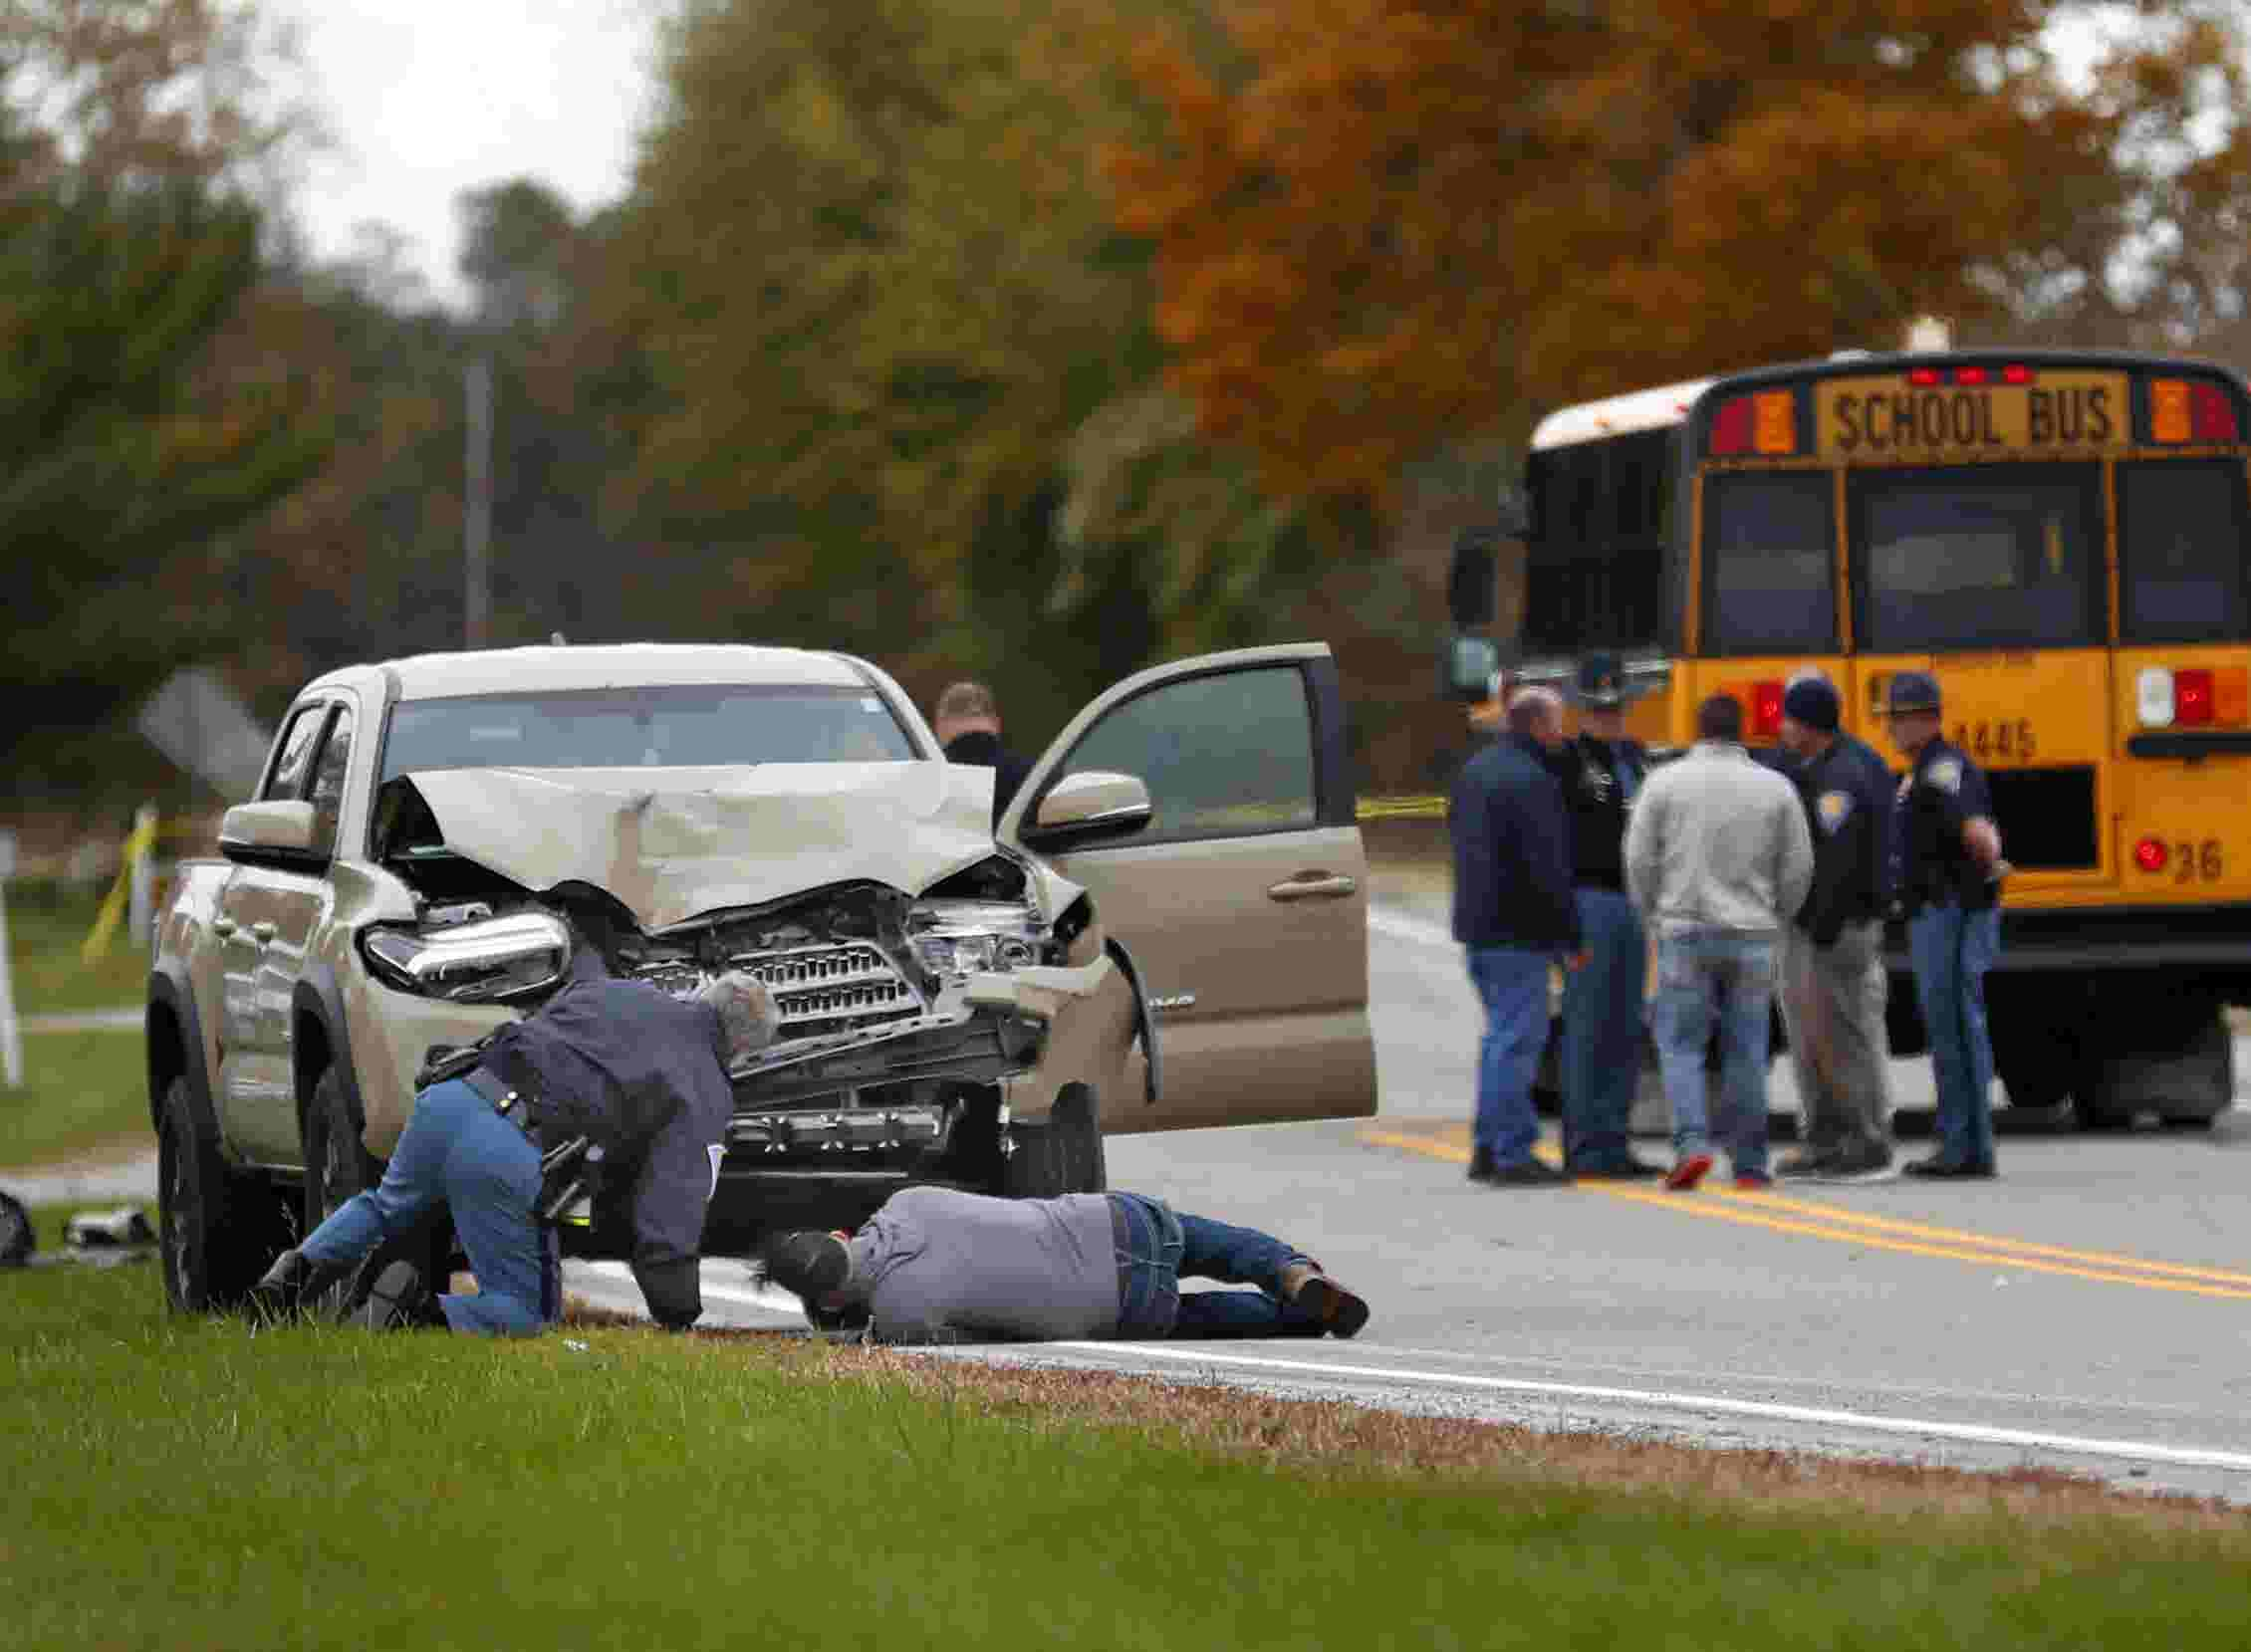 What We Know About The Indiana Bus Stop Crash Children And Driver